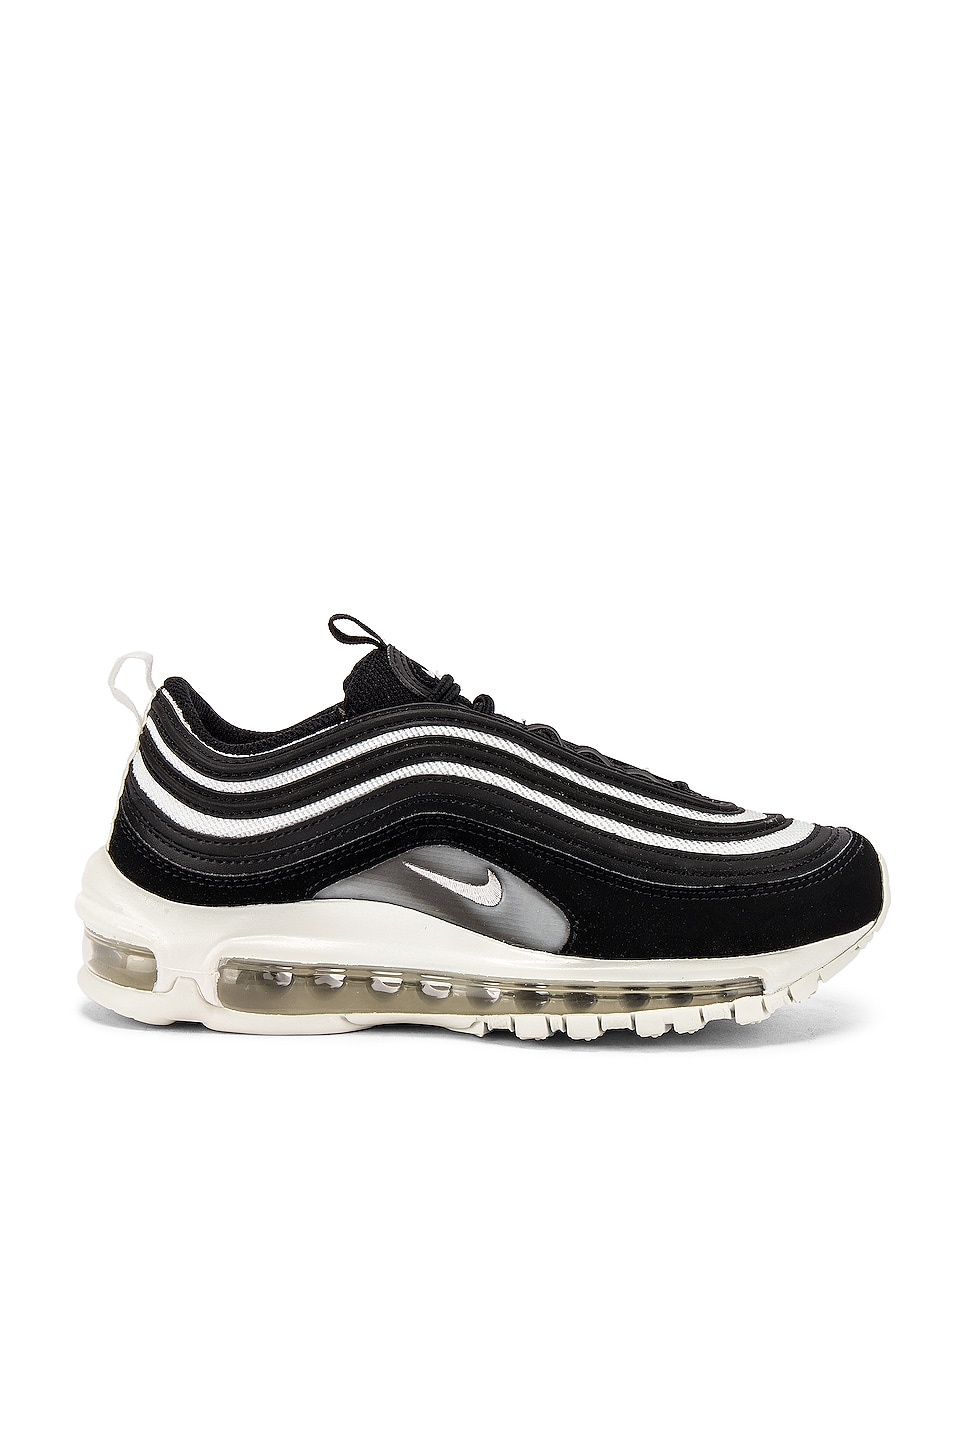 Nike Women's Air Max 97 in Black, Platinum & White